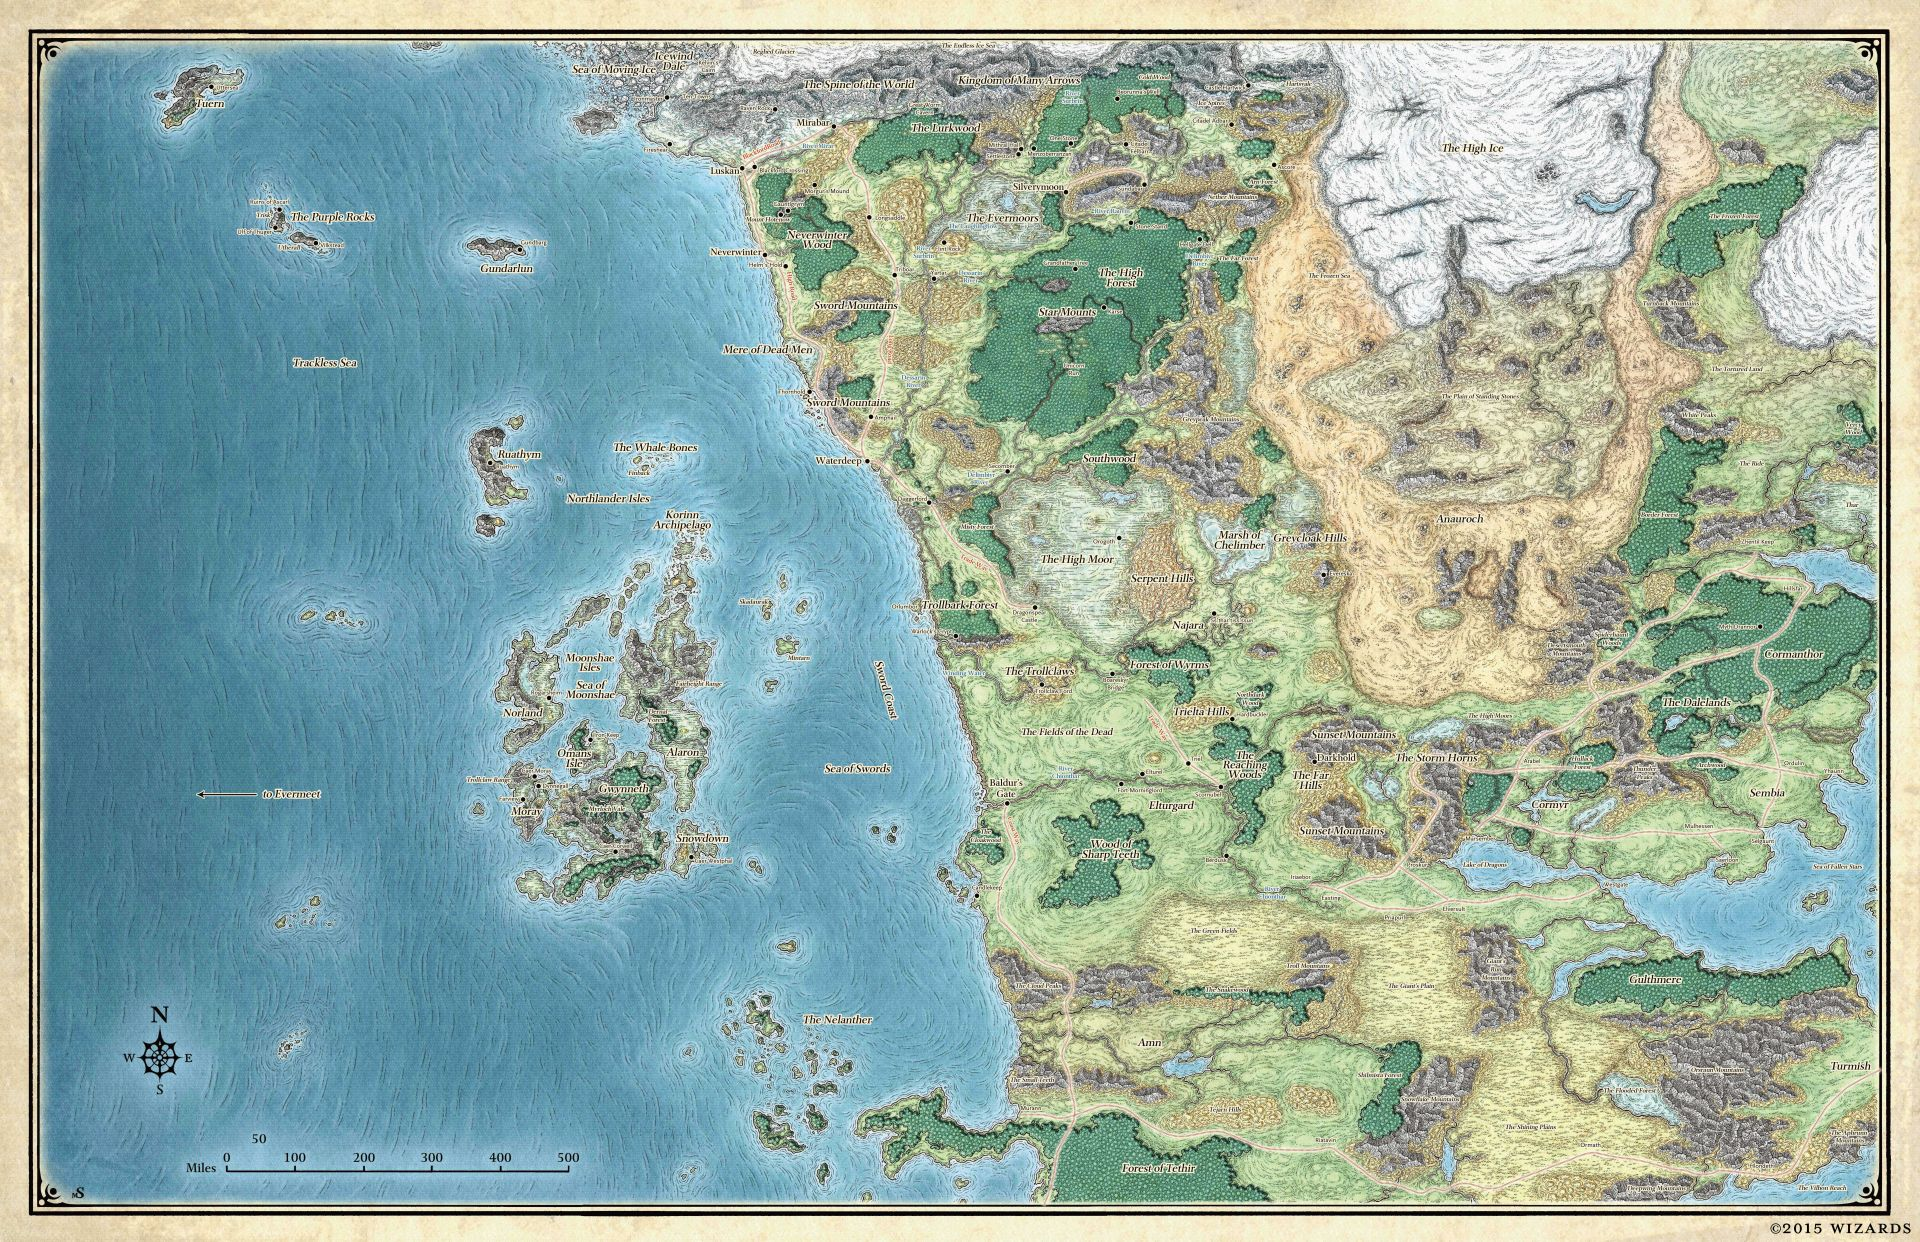 The Forgotten Realms circa 2015. (Image credit: Wizards of the Coast.)